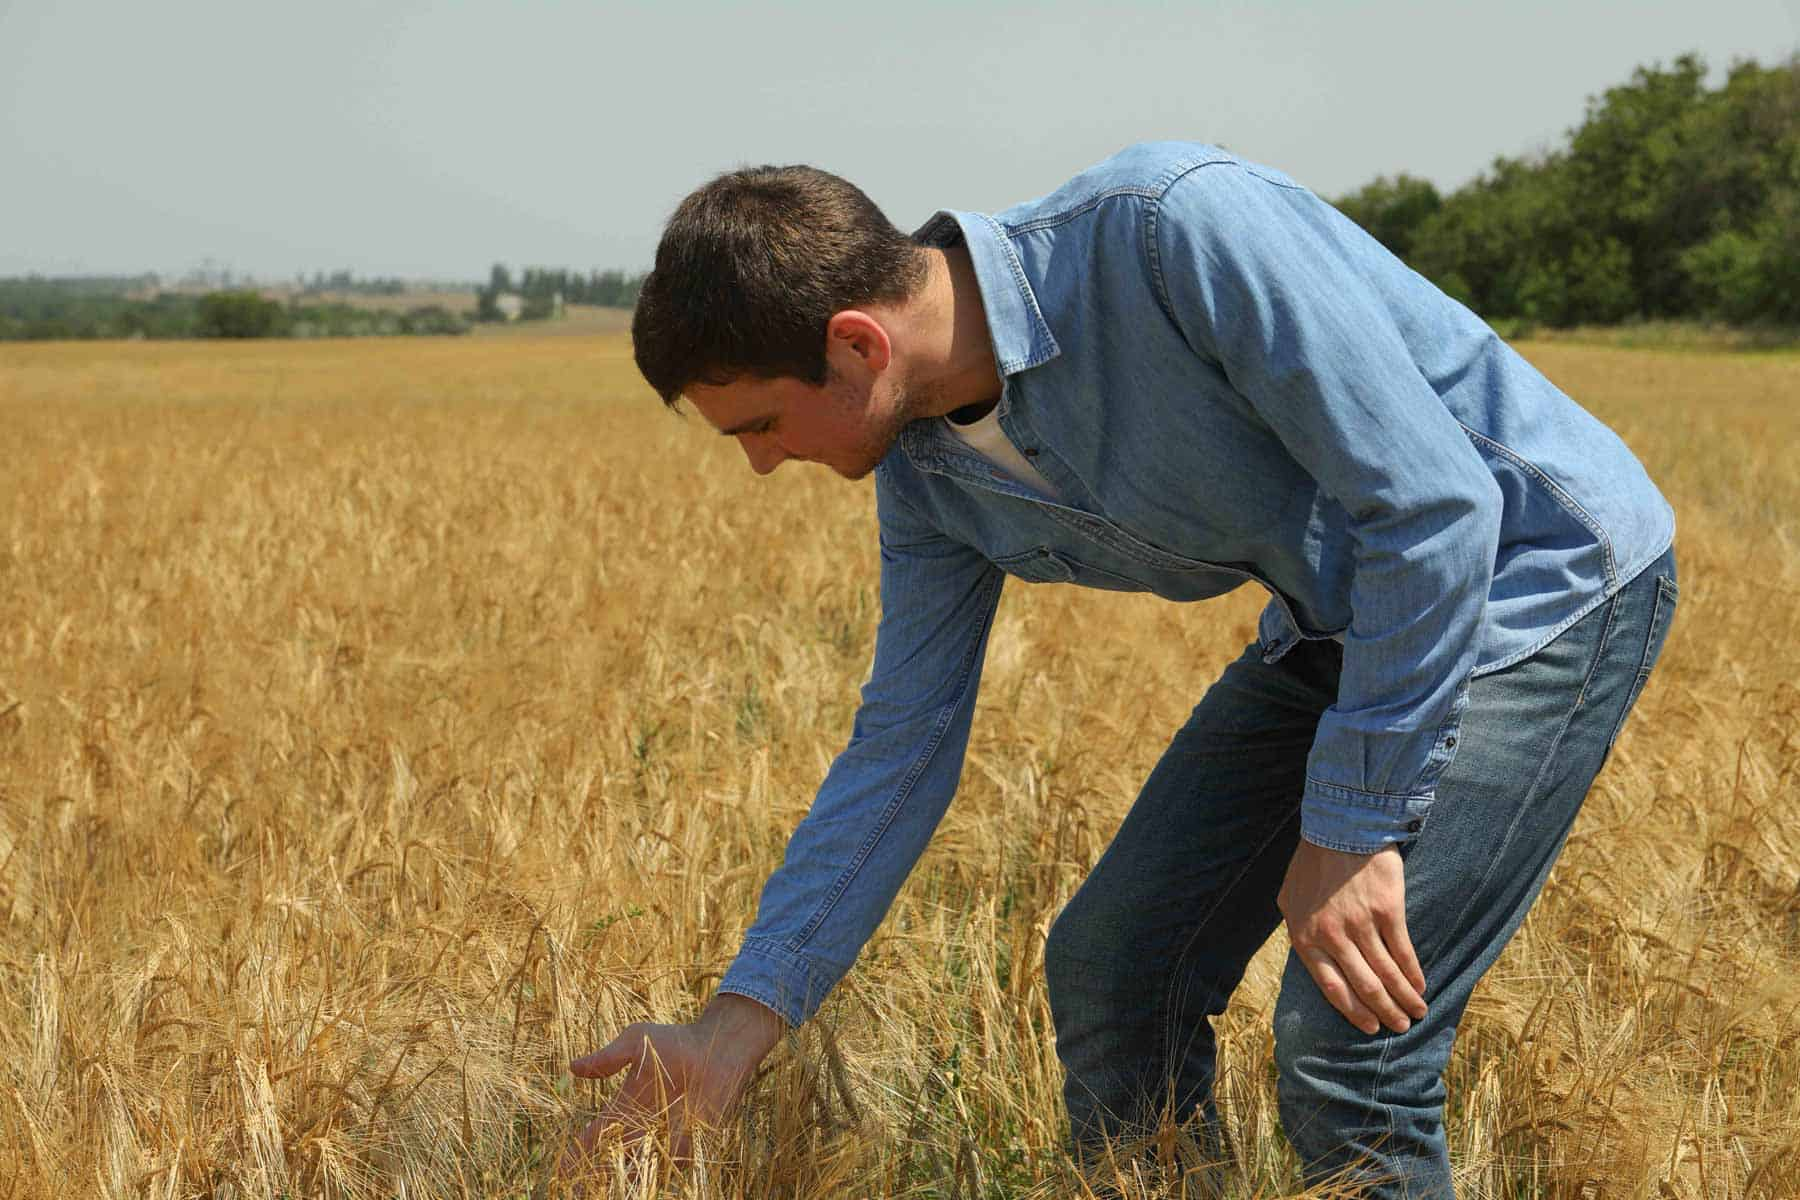 young-man-in-barley-field-agriculture-business-far-4VU7XPK__.jpg